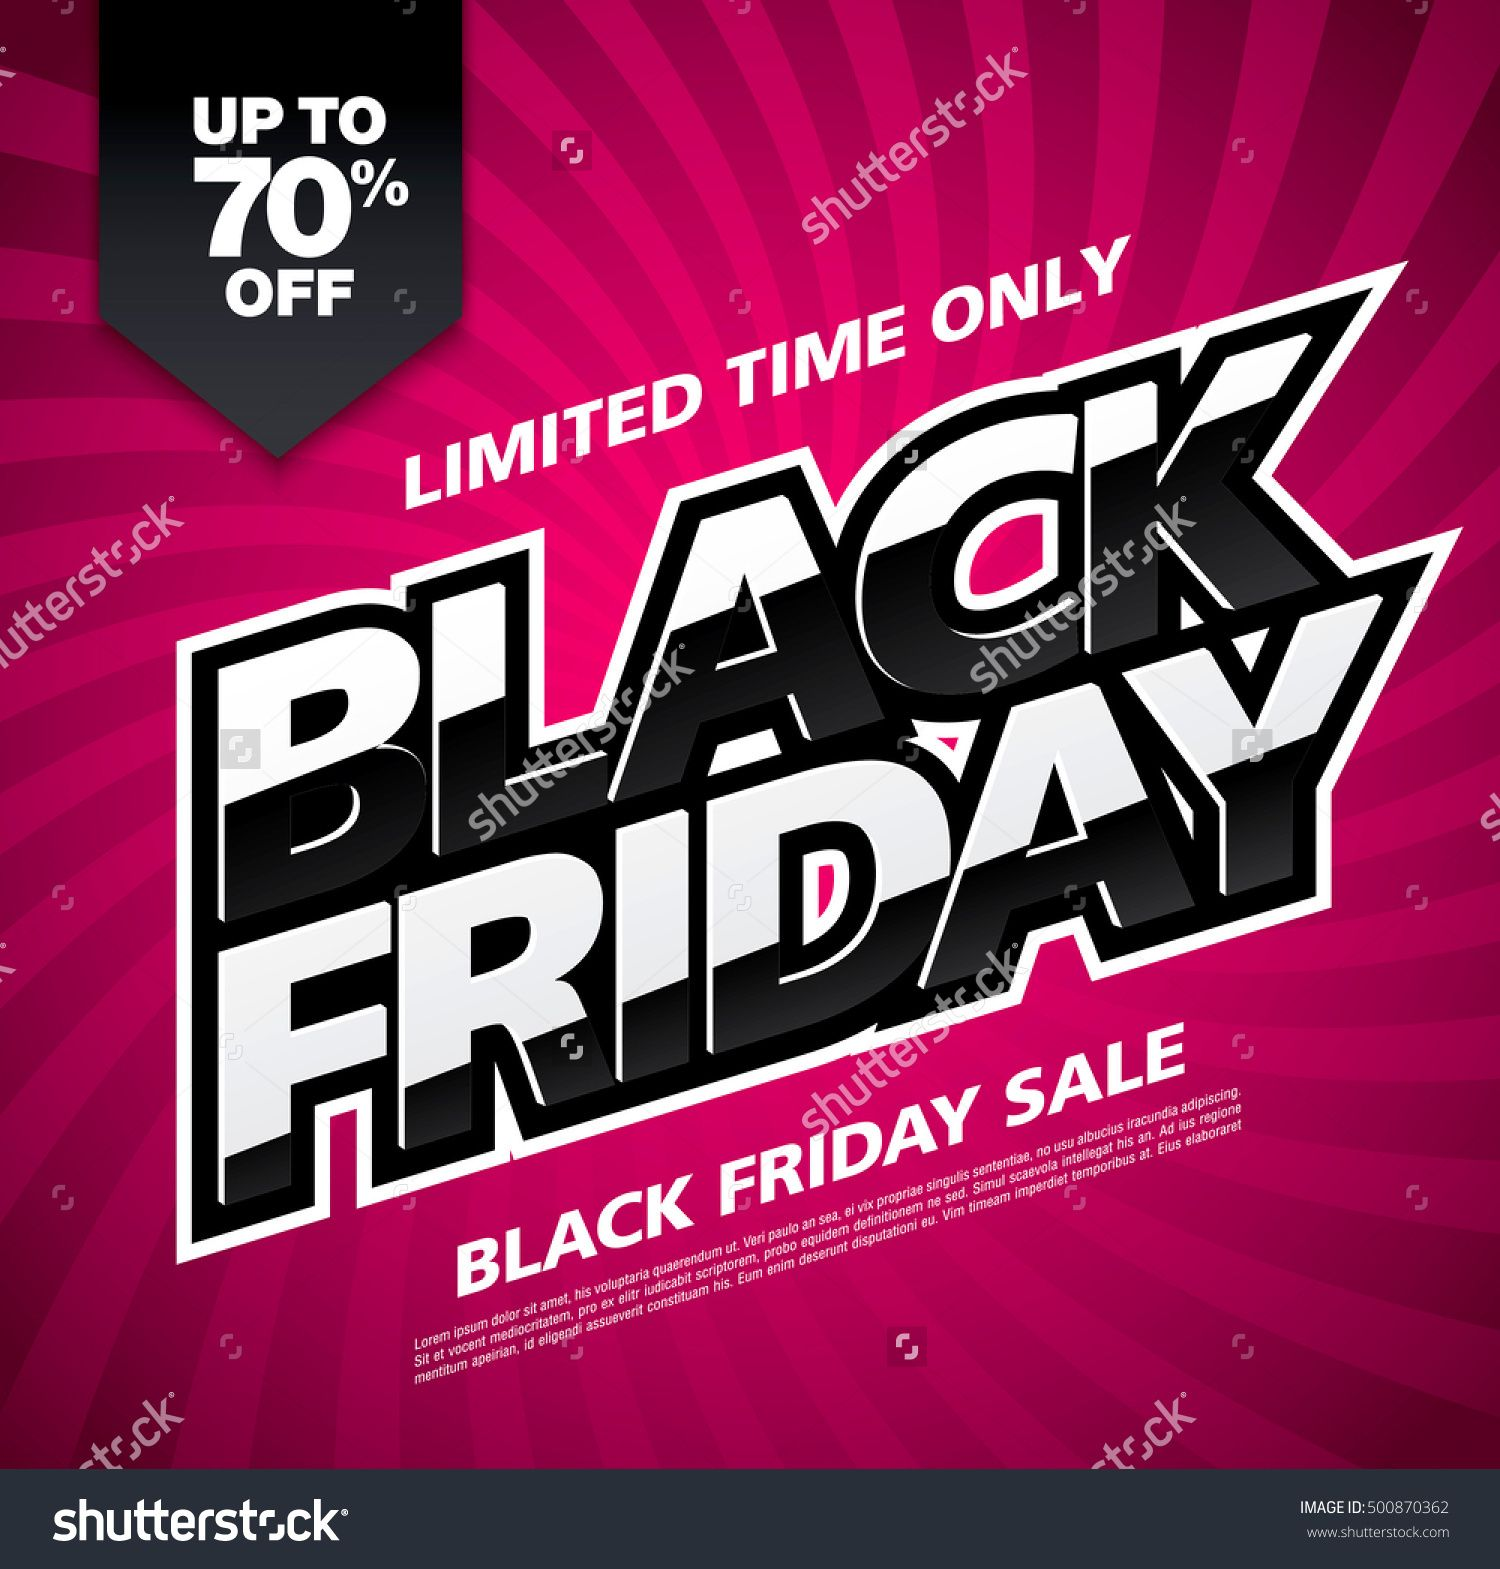 Black friday sale banner buy this stock vector on shutterstock find other images